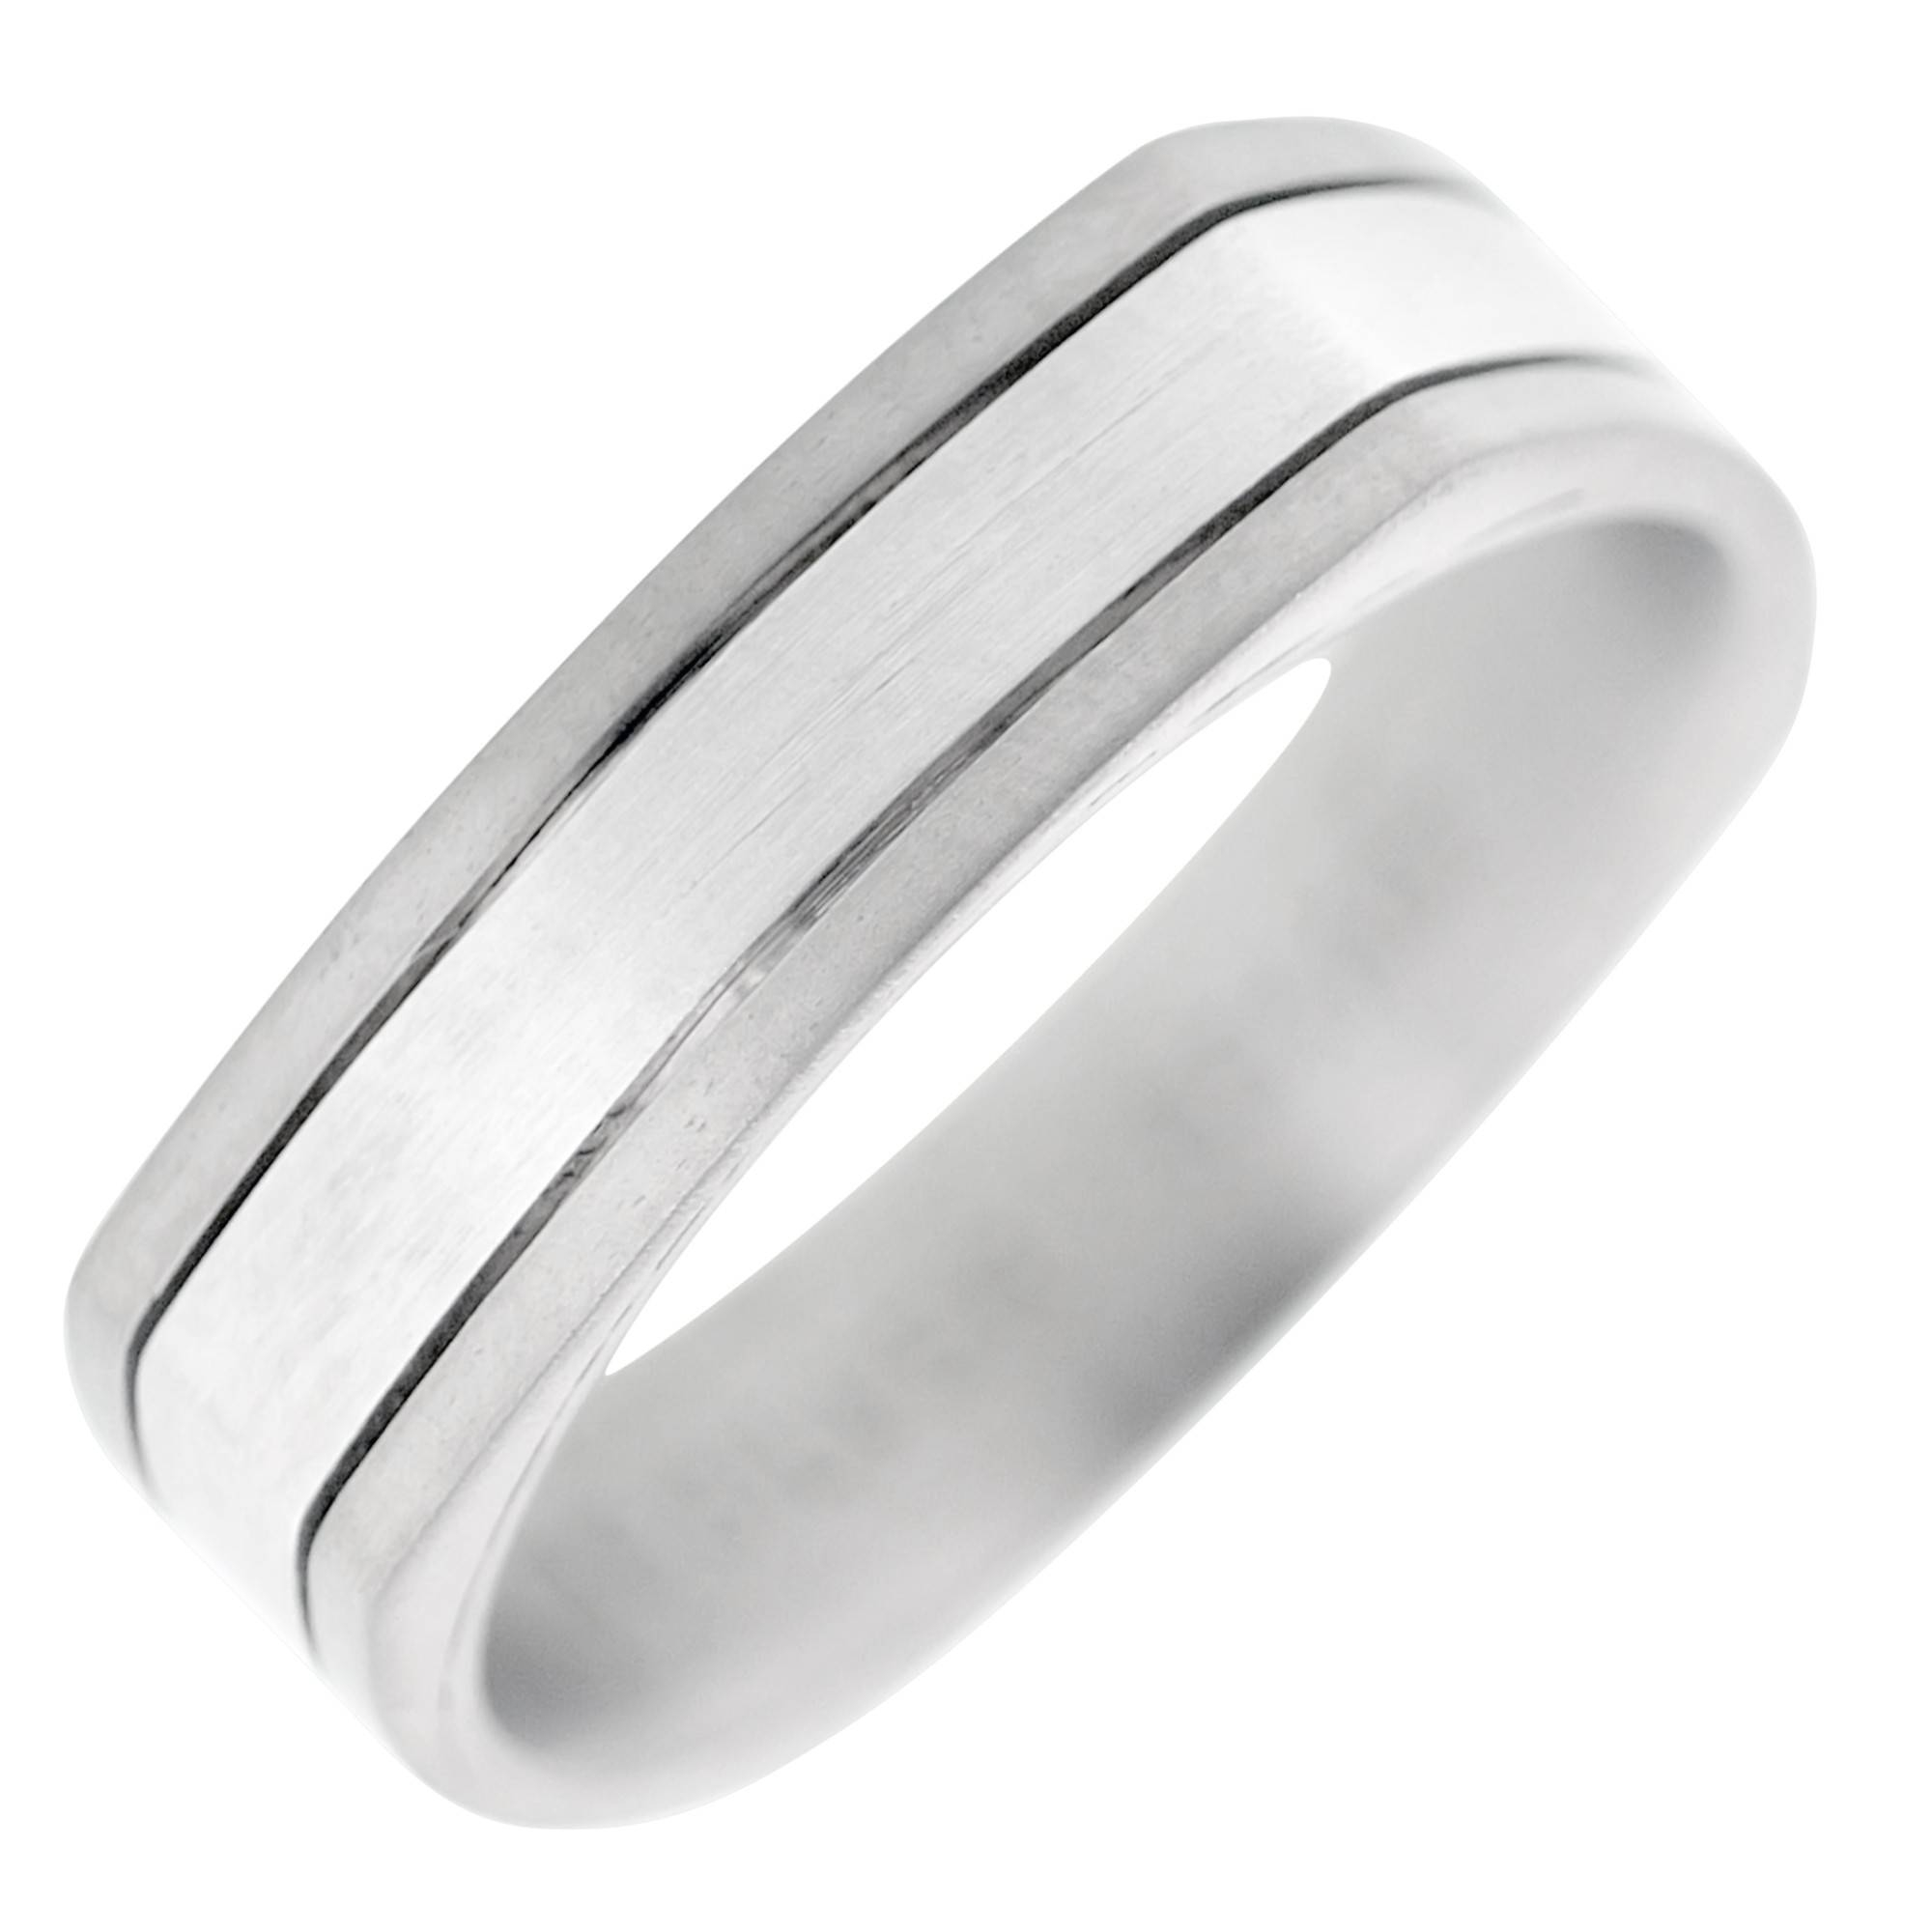 Dora Mens Wedding Band In Titanium And 14Kt White Gold (6Mm) With Regard To Dora Mens Wedding Bands (View 12 of 15)